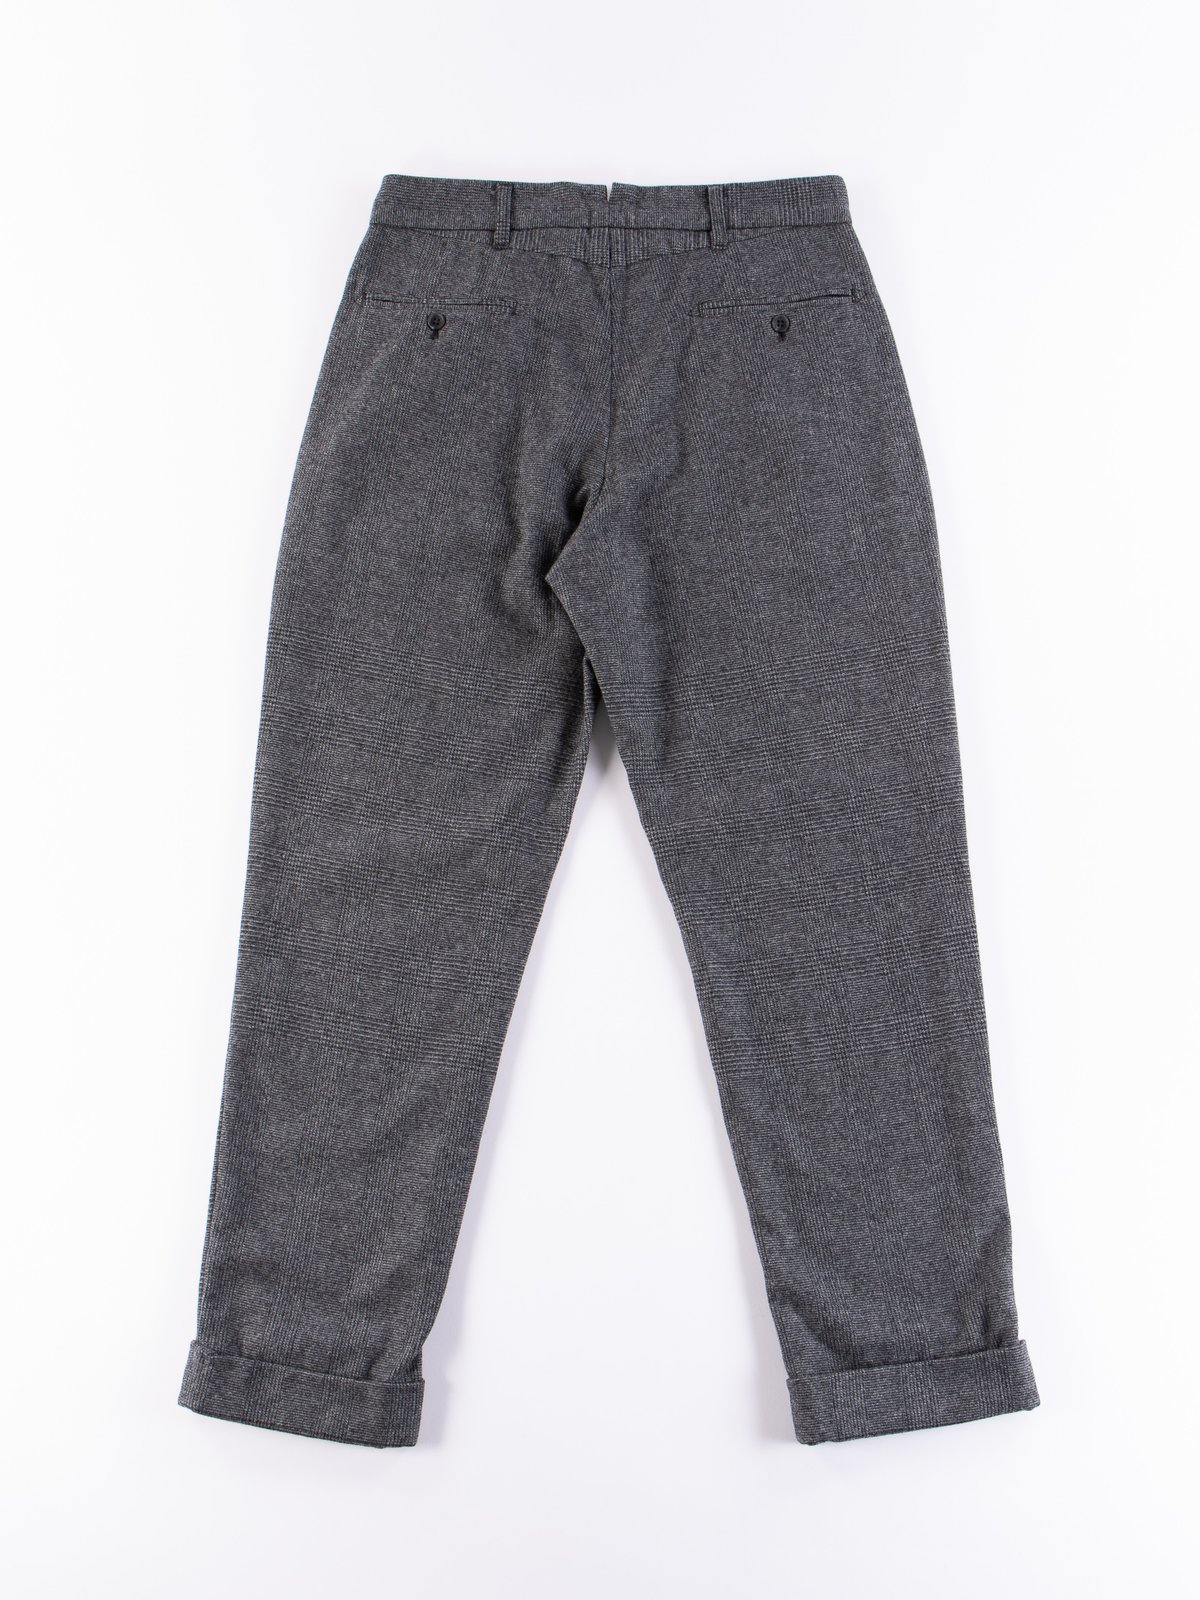 Grey Wool Glen Plaid Stripe Andover Pant - Image 7